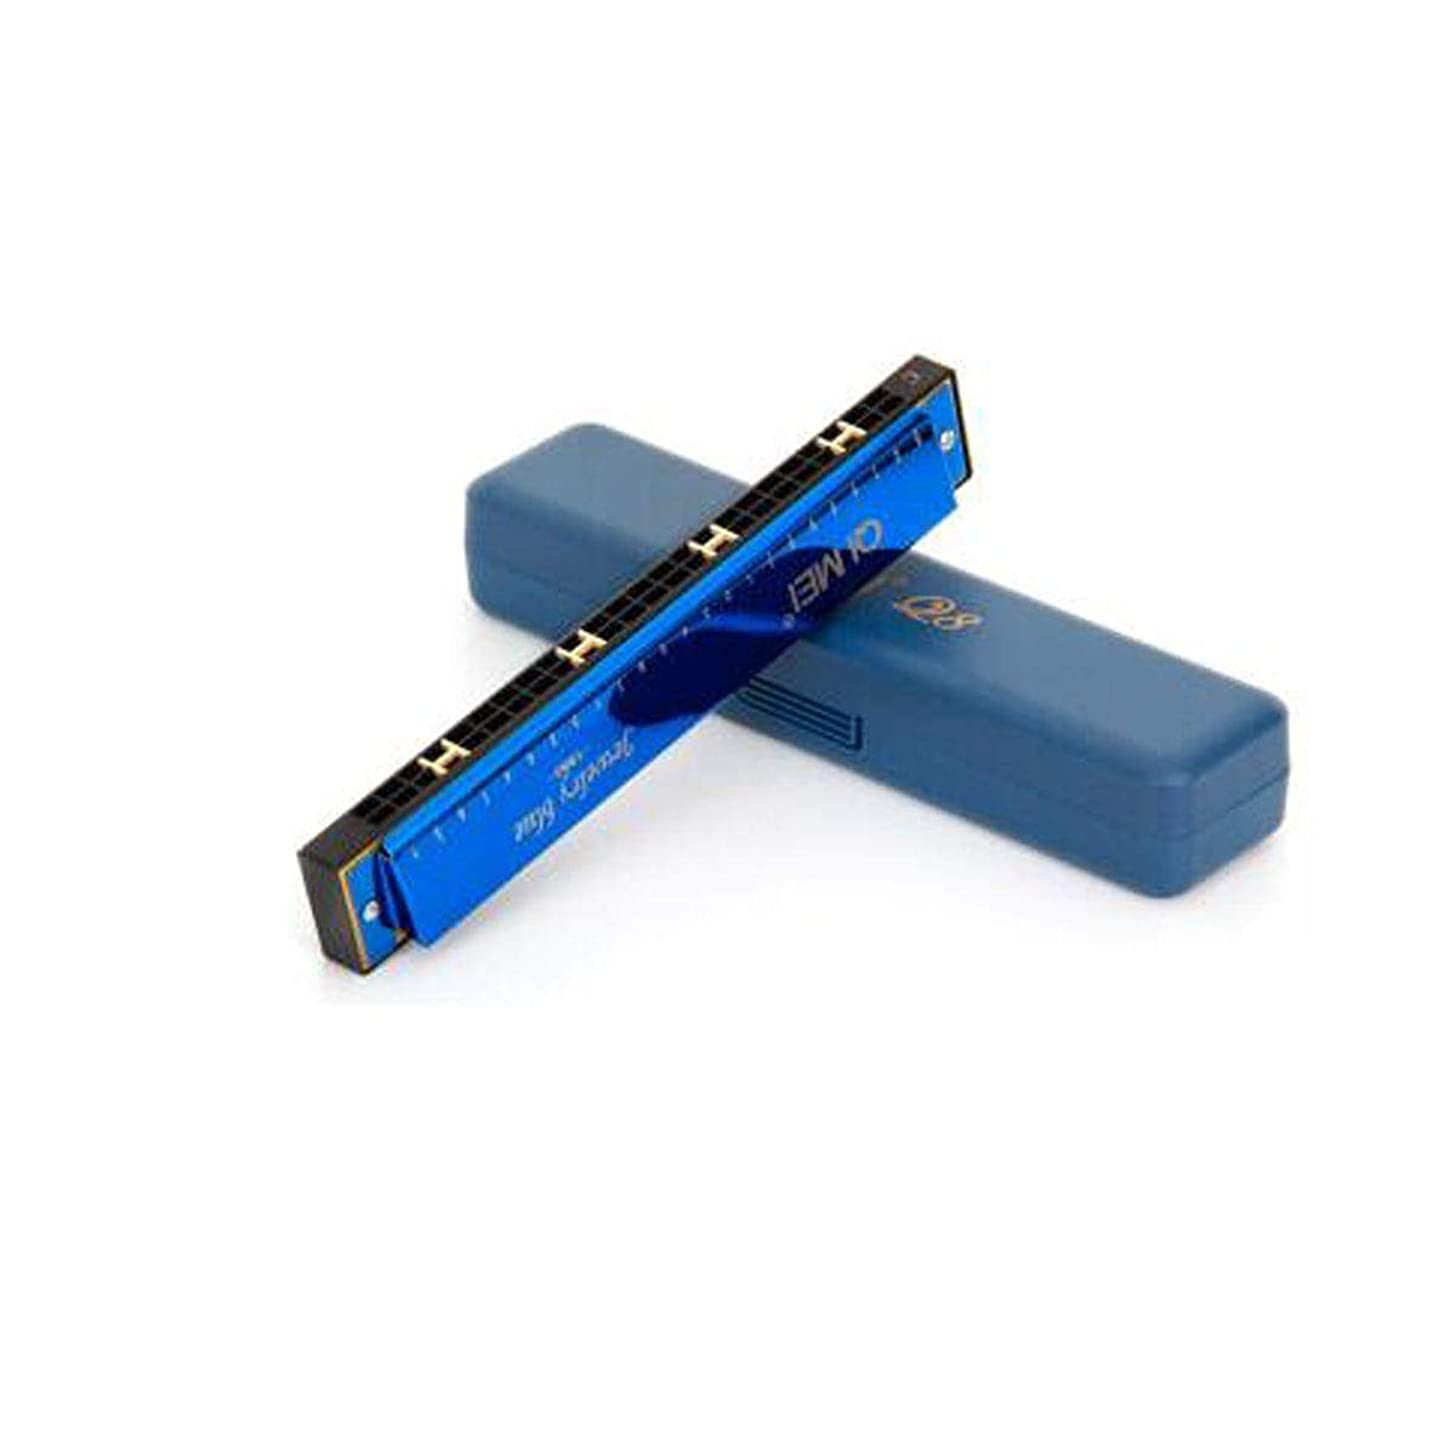 Harmonica, Children's Students Beginners Introduction Adult Musical Instruments Playing 24 Hole Accented C Harmonica, Chinese Red + Textbook (Color : Blue-182.83.1cm)